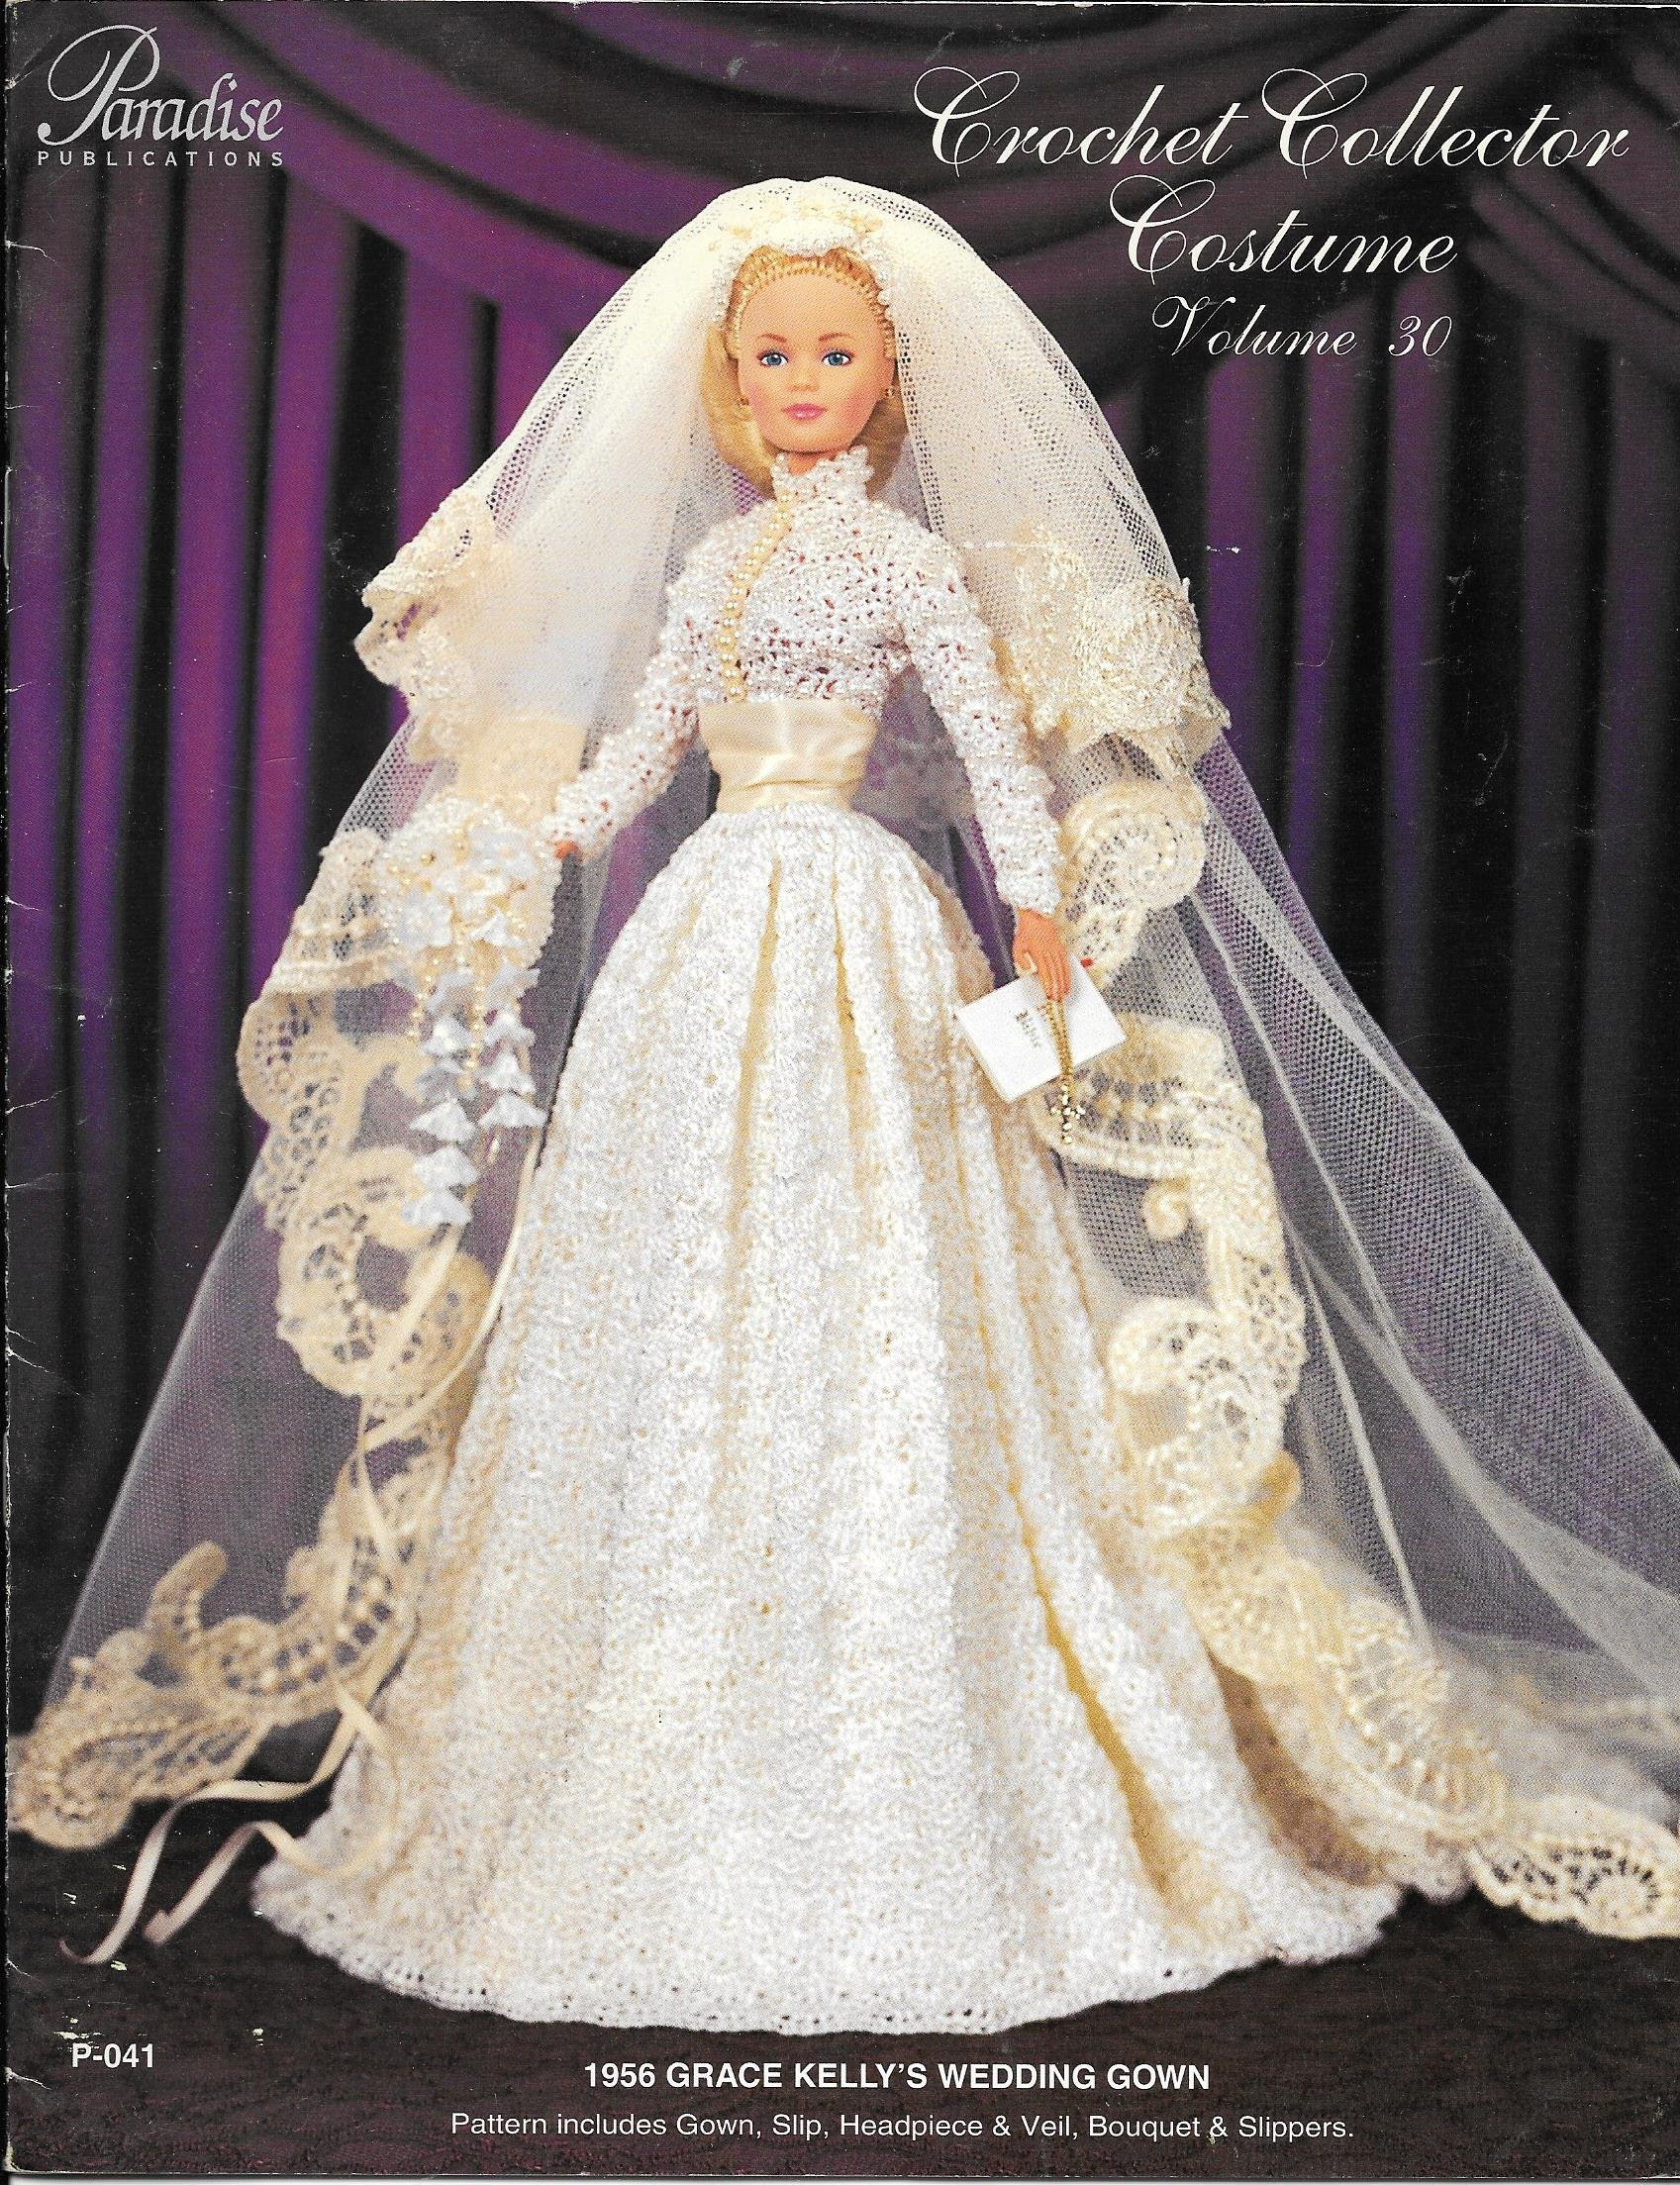 Crochet Collector Costume Volume 30: 1956 Grace Kelly\'s Wedding Gown ...